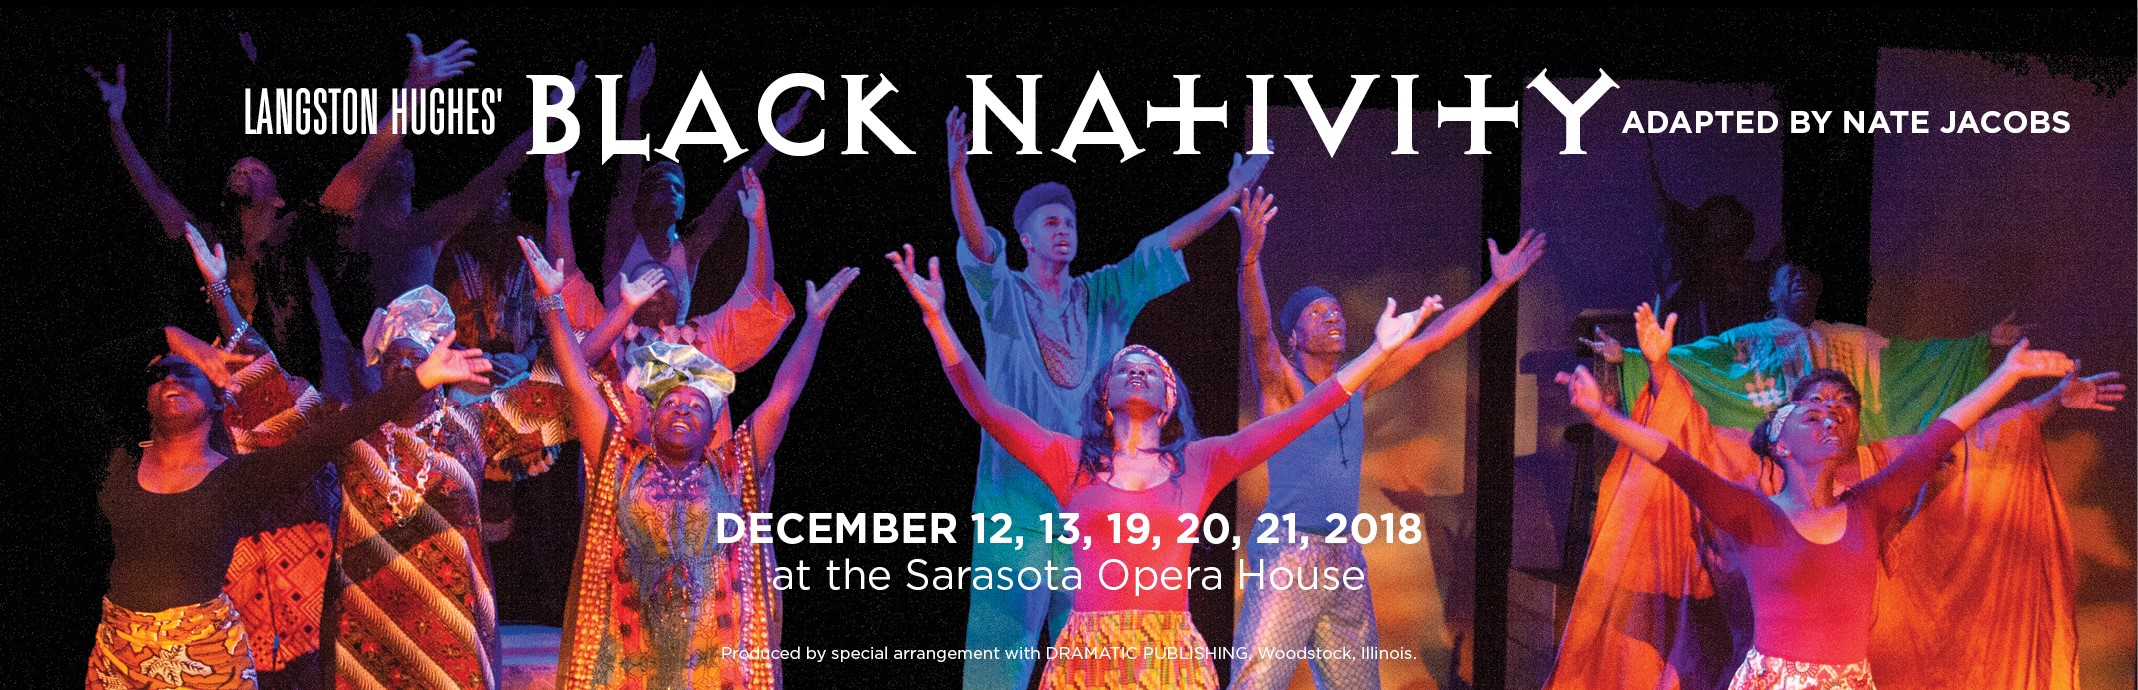 Langston Hughe's Black Nativity December 12, 13, 19. 20, 21, 2018 at the Sarasota Opera House; Produced by special arrangement with DRAMATIC PUBLISHING, Woodstock, Illinois